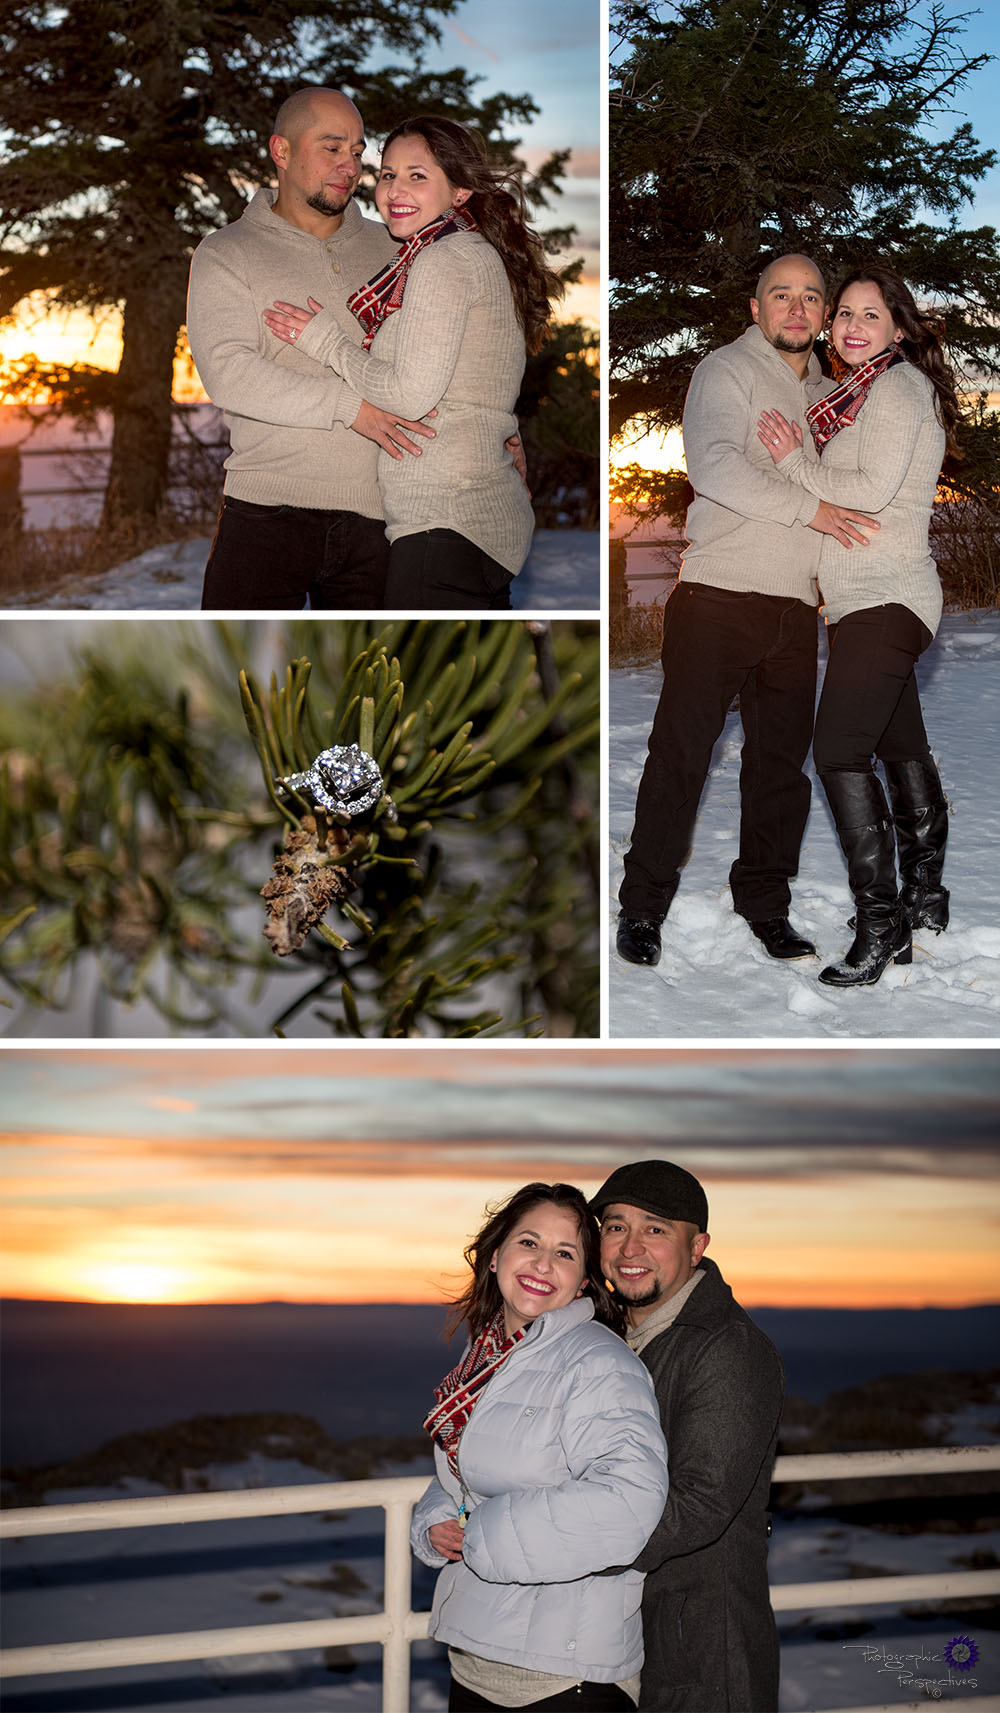 Winter photoshoot   Photographic Perspectives   Engagement